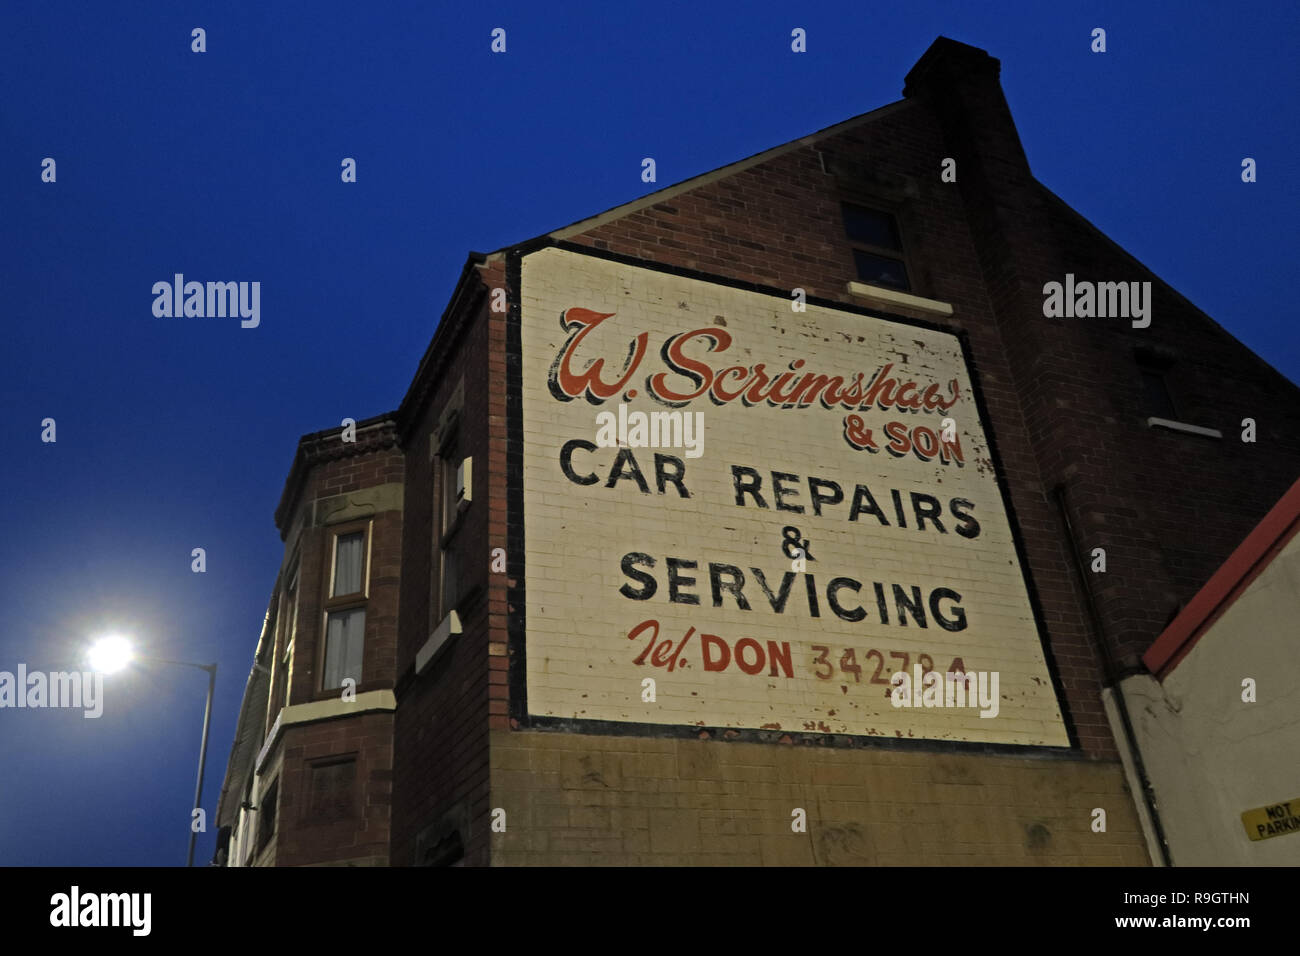 W.Scrimshaw and son, Car Repairs and Servicing, Don 342784, Balby Rd, Doncaster, South Yorkshire, England, UK,  DN4 0RE at dusk - Stock Image